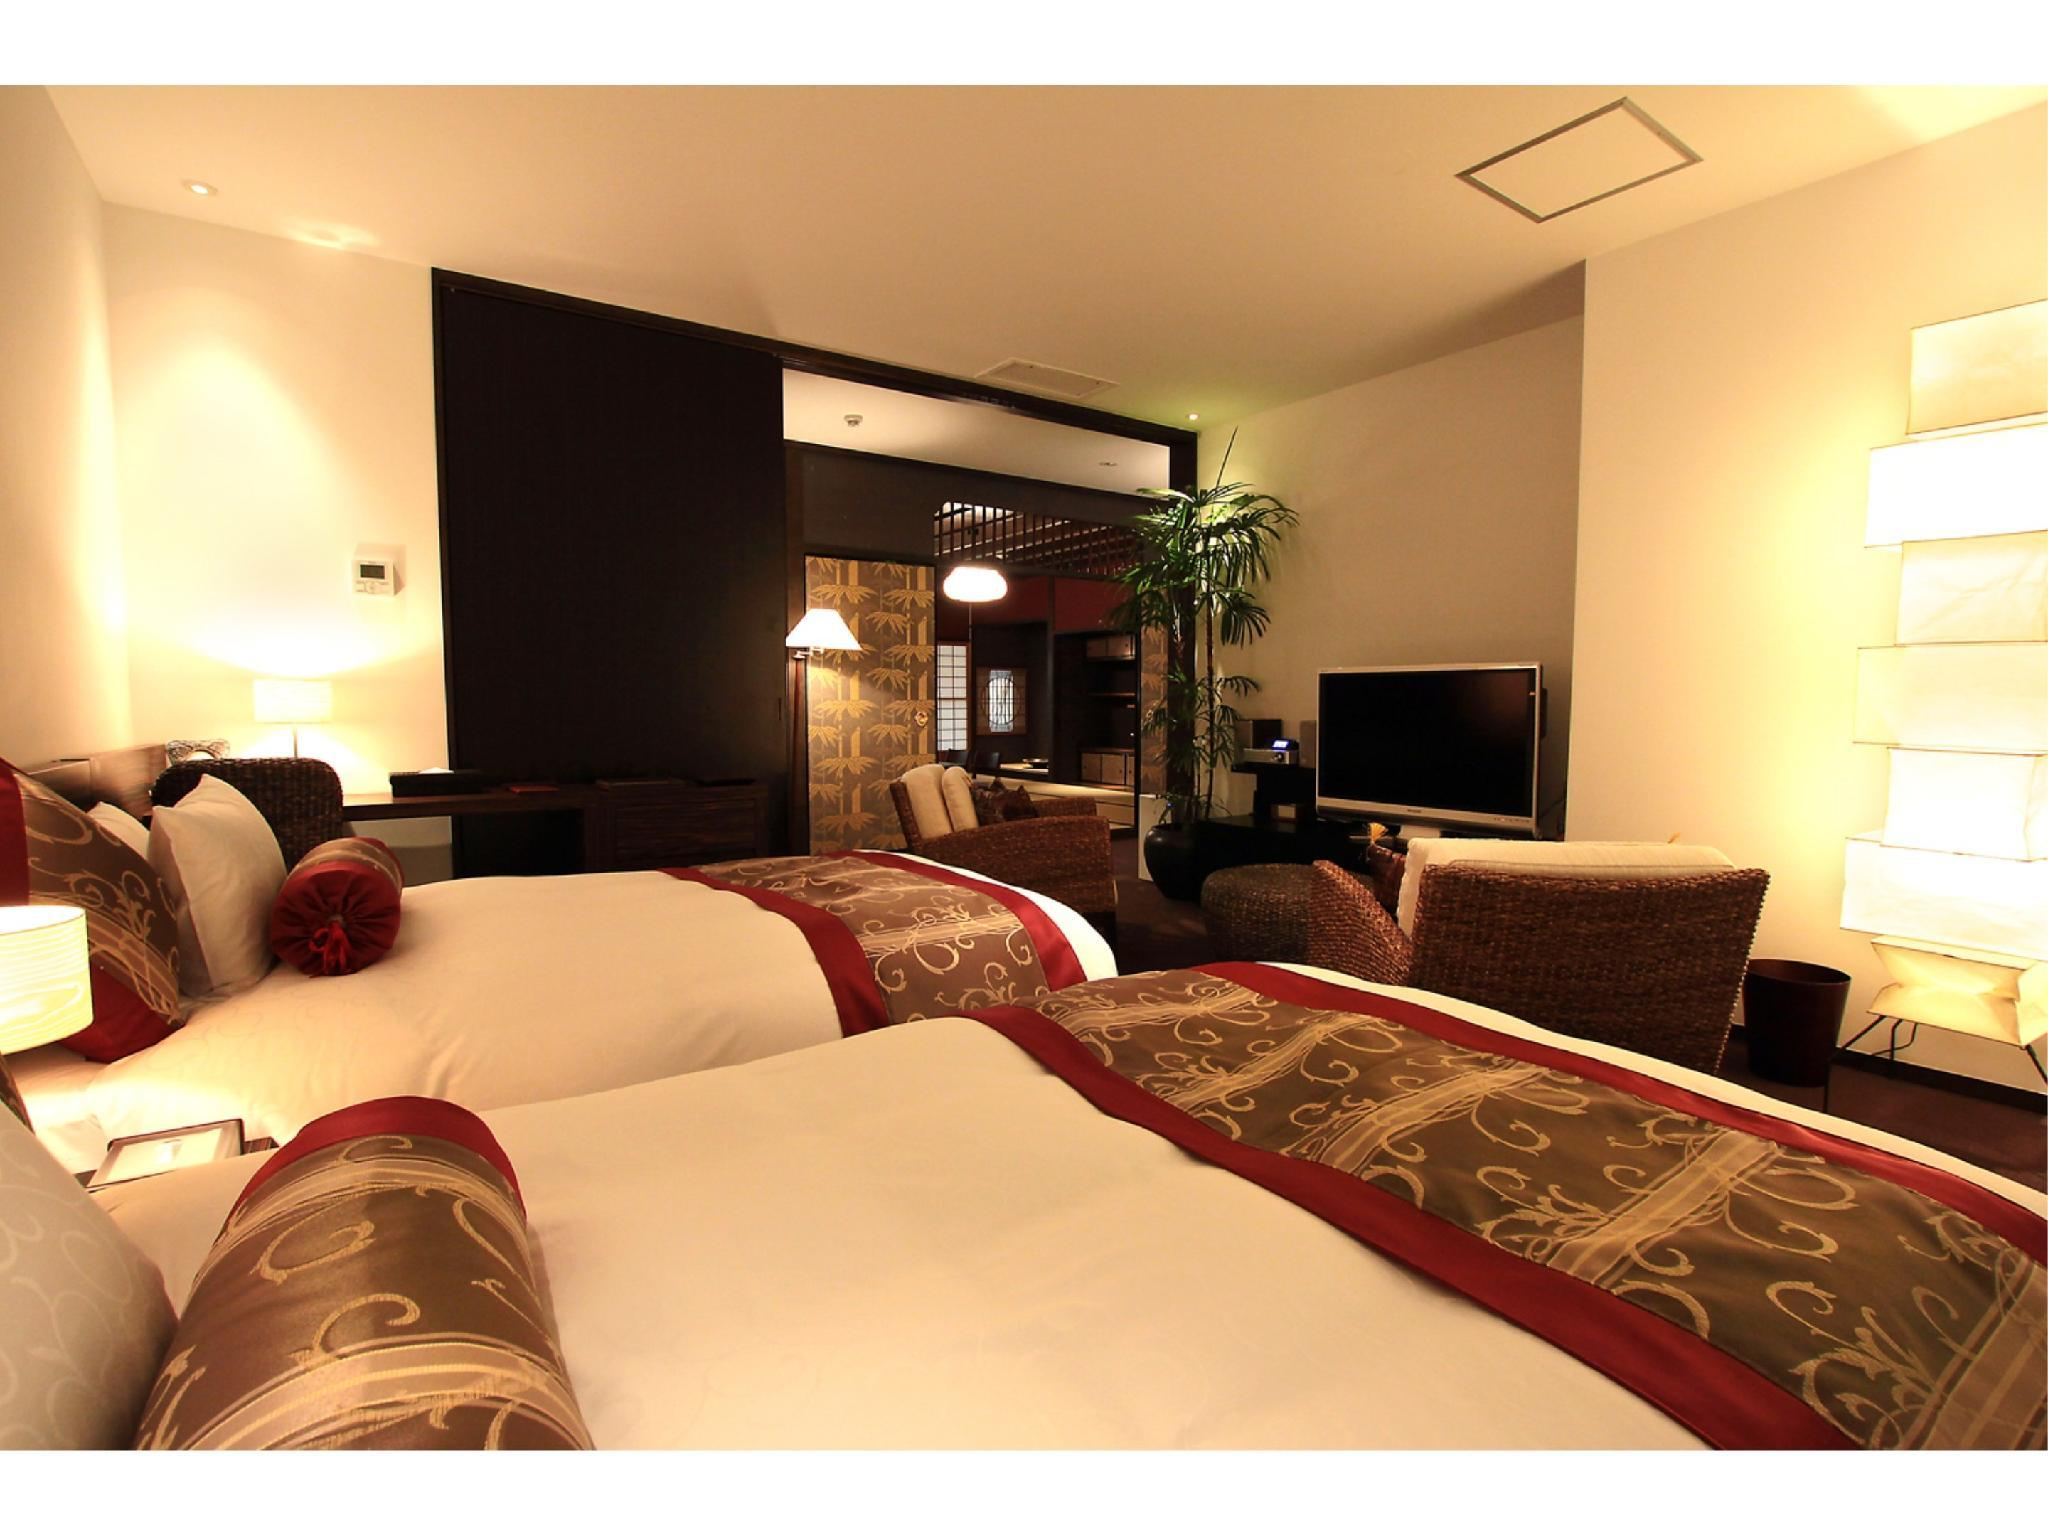 KIZASHI THE SUITE ROOM 【304大竹】|103平米 (Room)